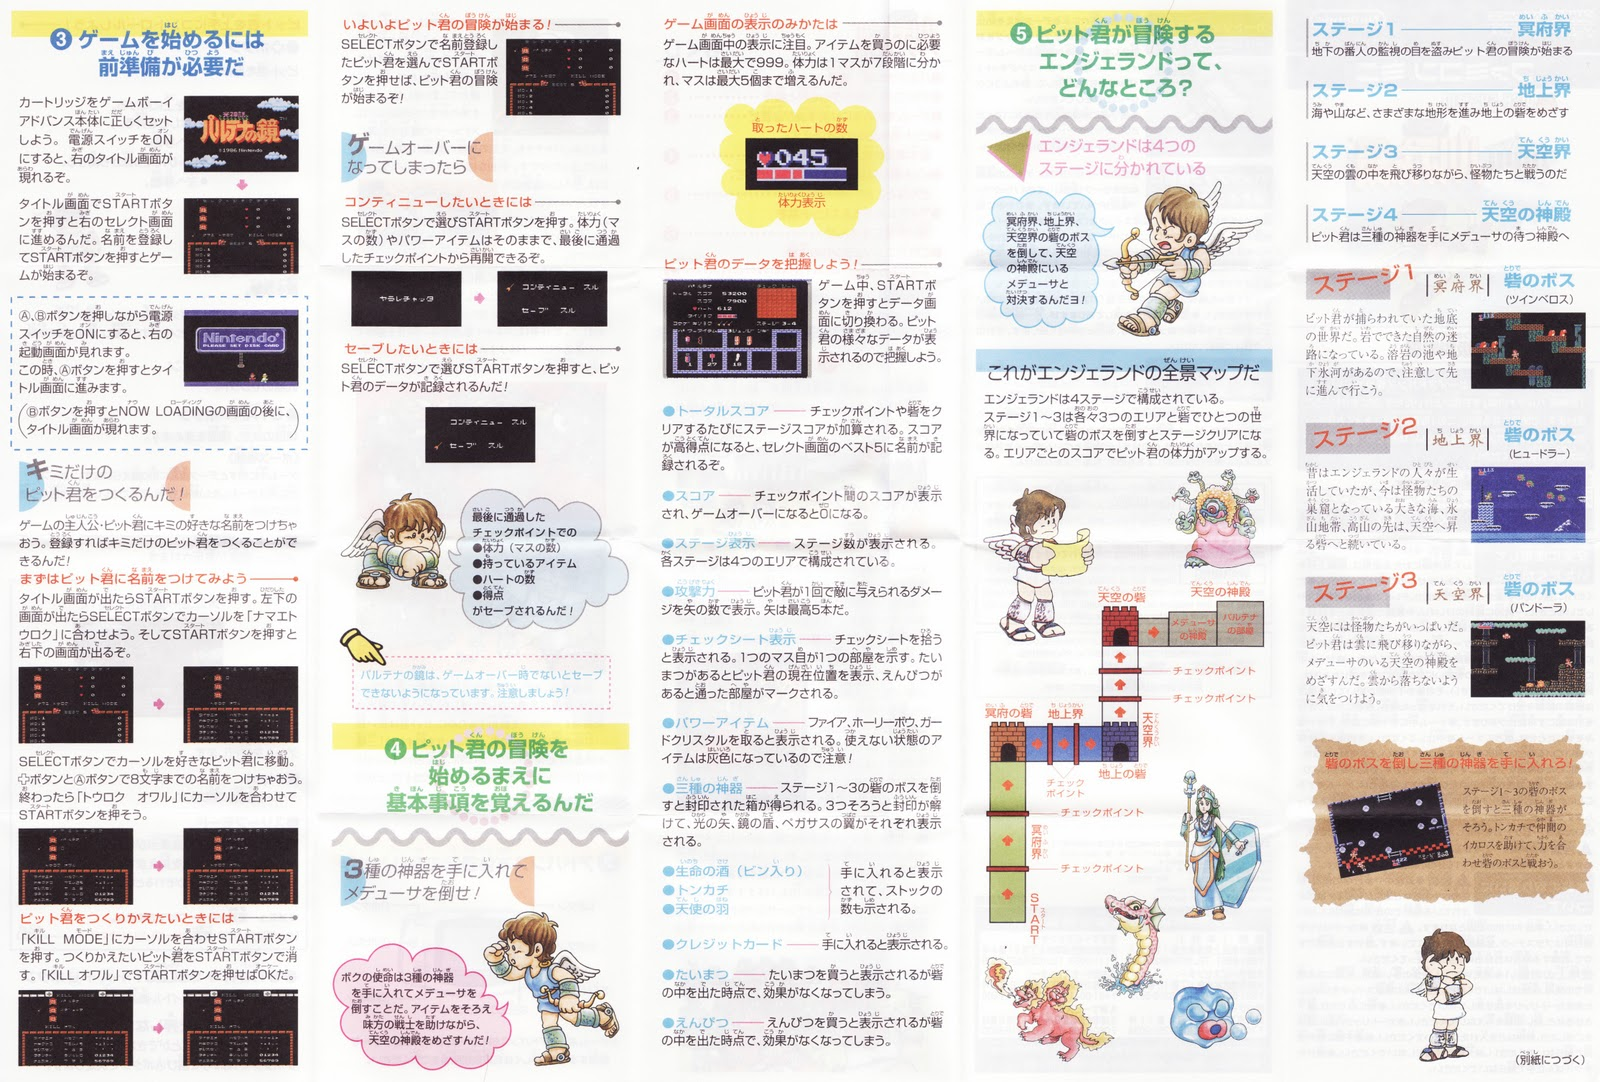 Gba manual Scans